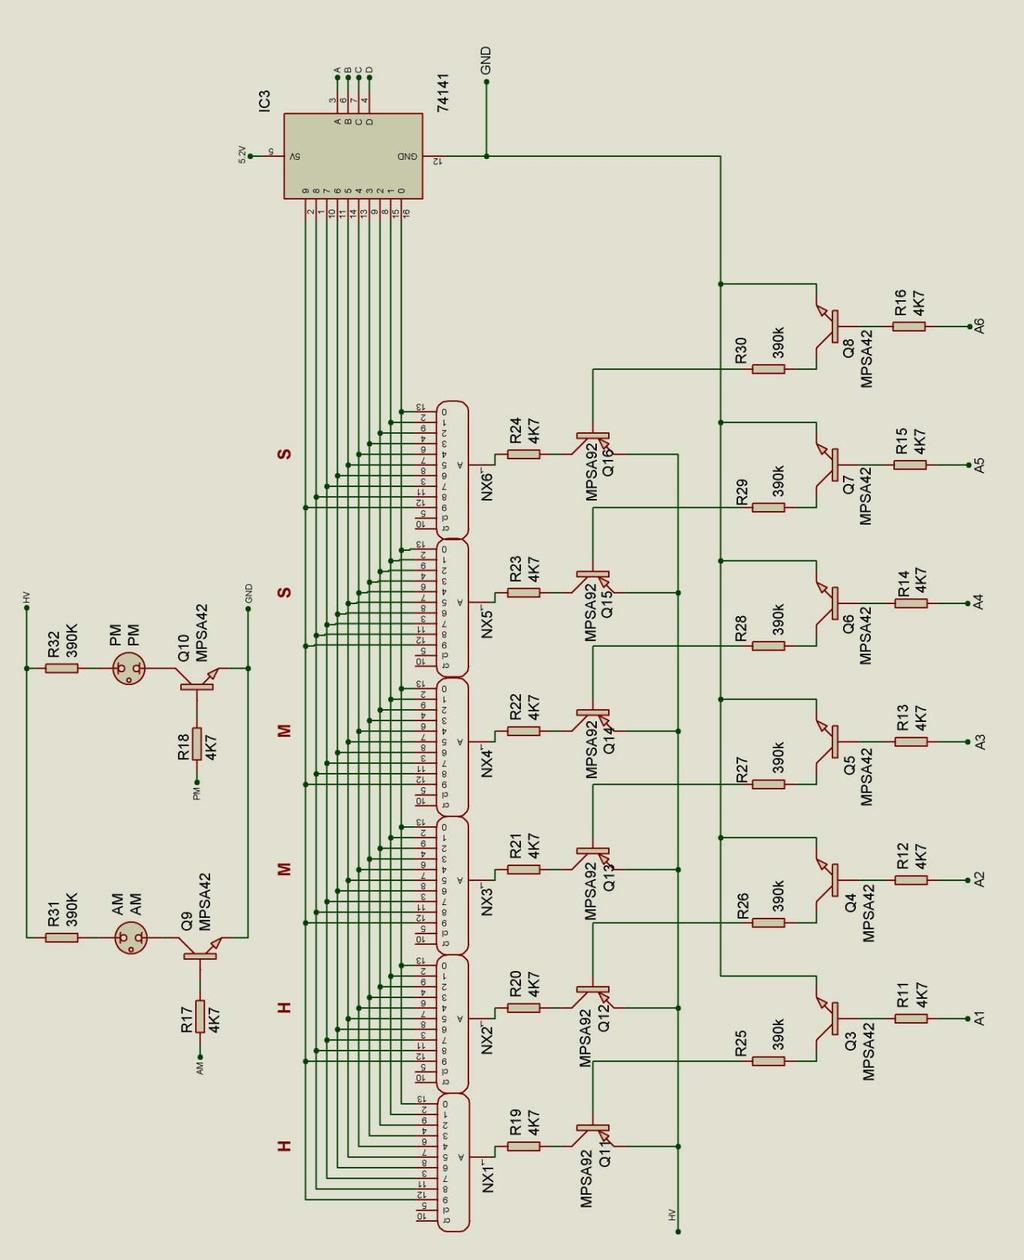 C3 Rs 915 Lcd Wiring Diagram Free Download Kib Panel Nixie Clock Type Sixnix Pdf Monitor At